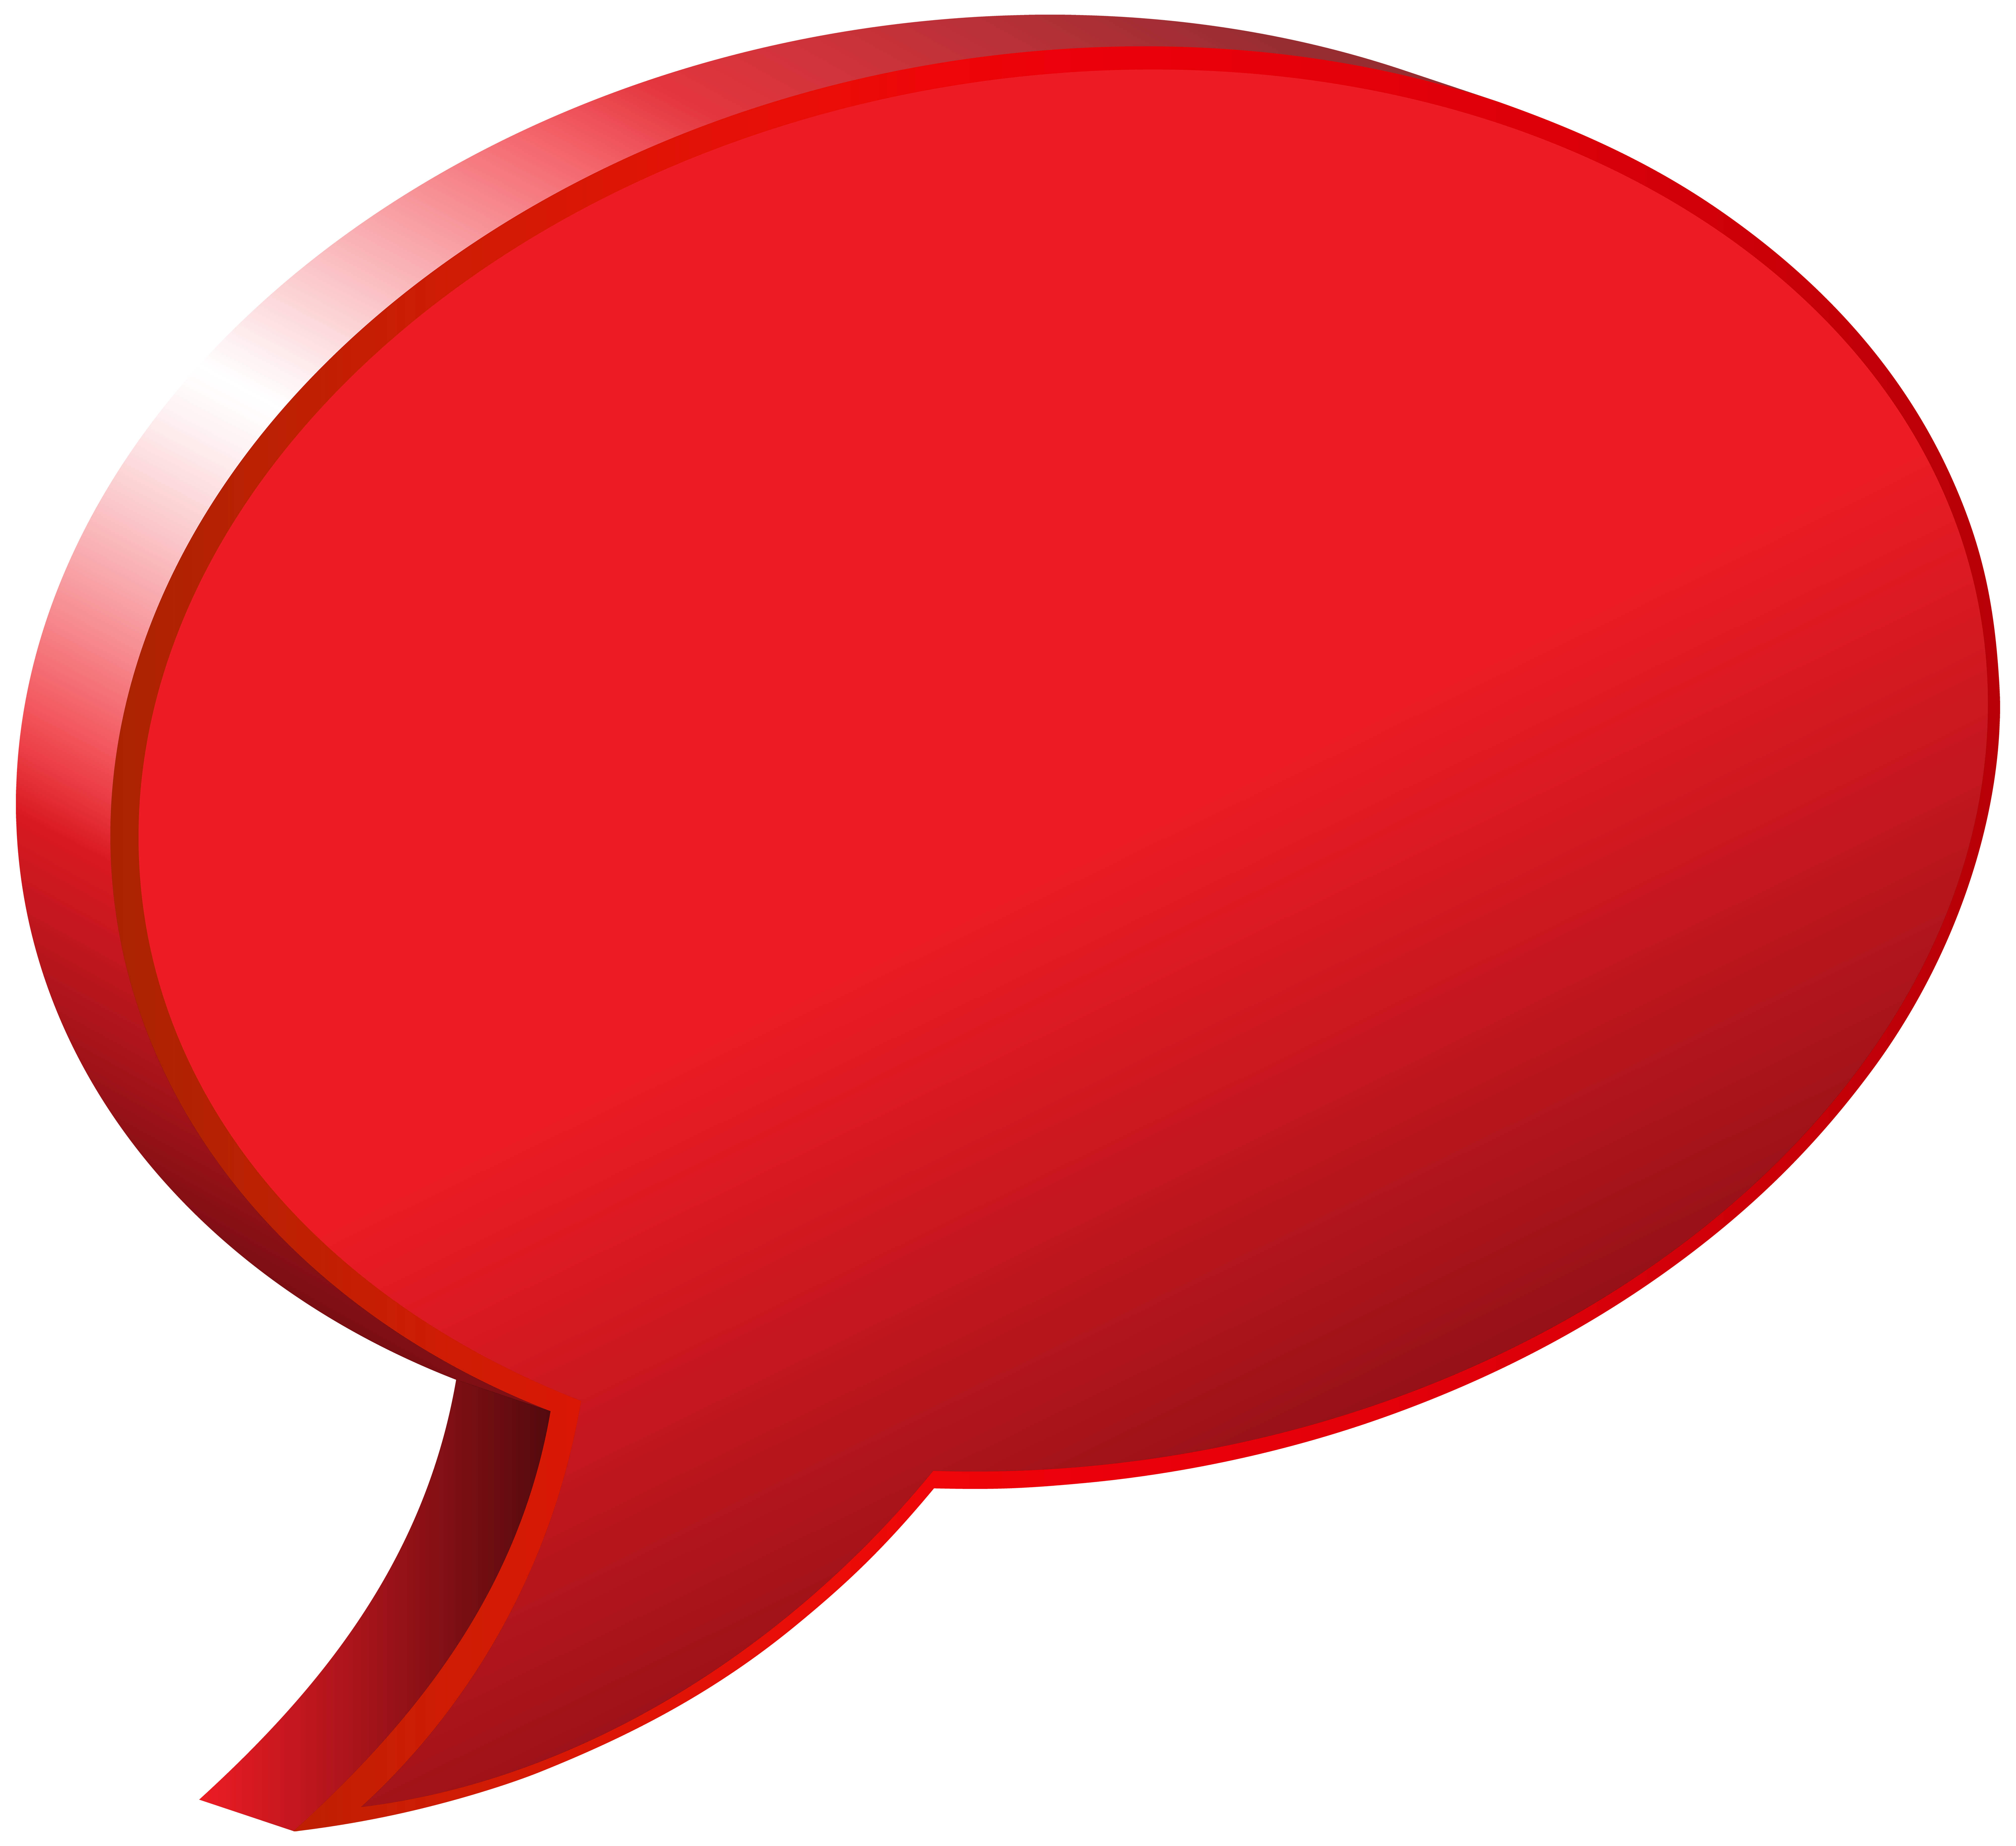 Transparent speech bubble png. Red image gallery yopriceville